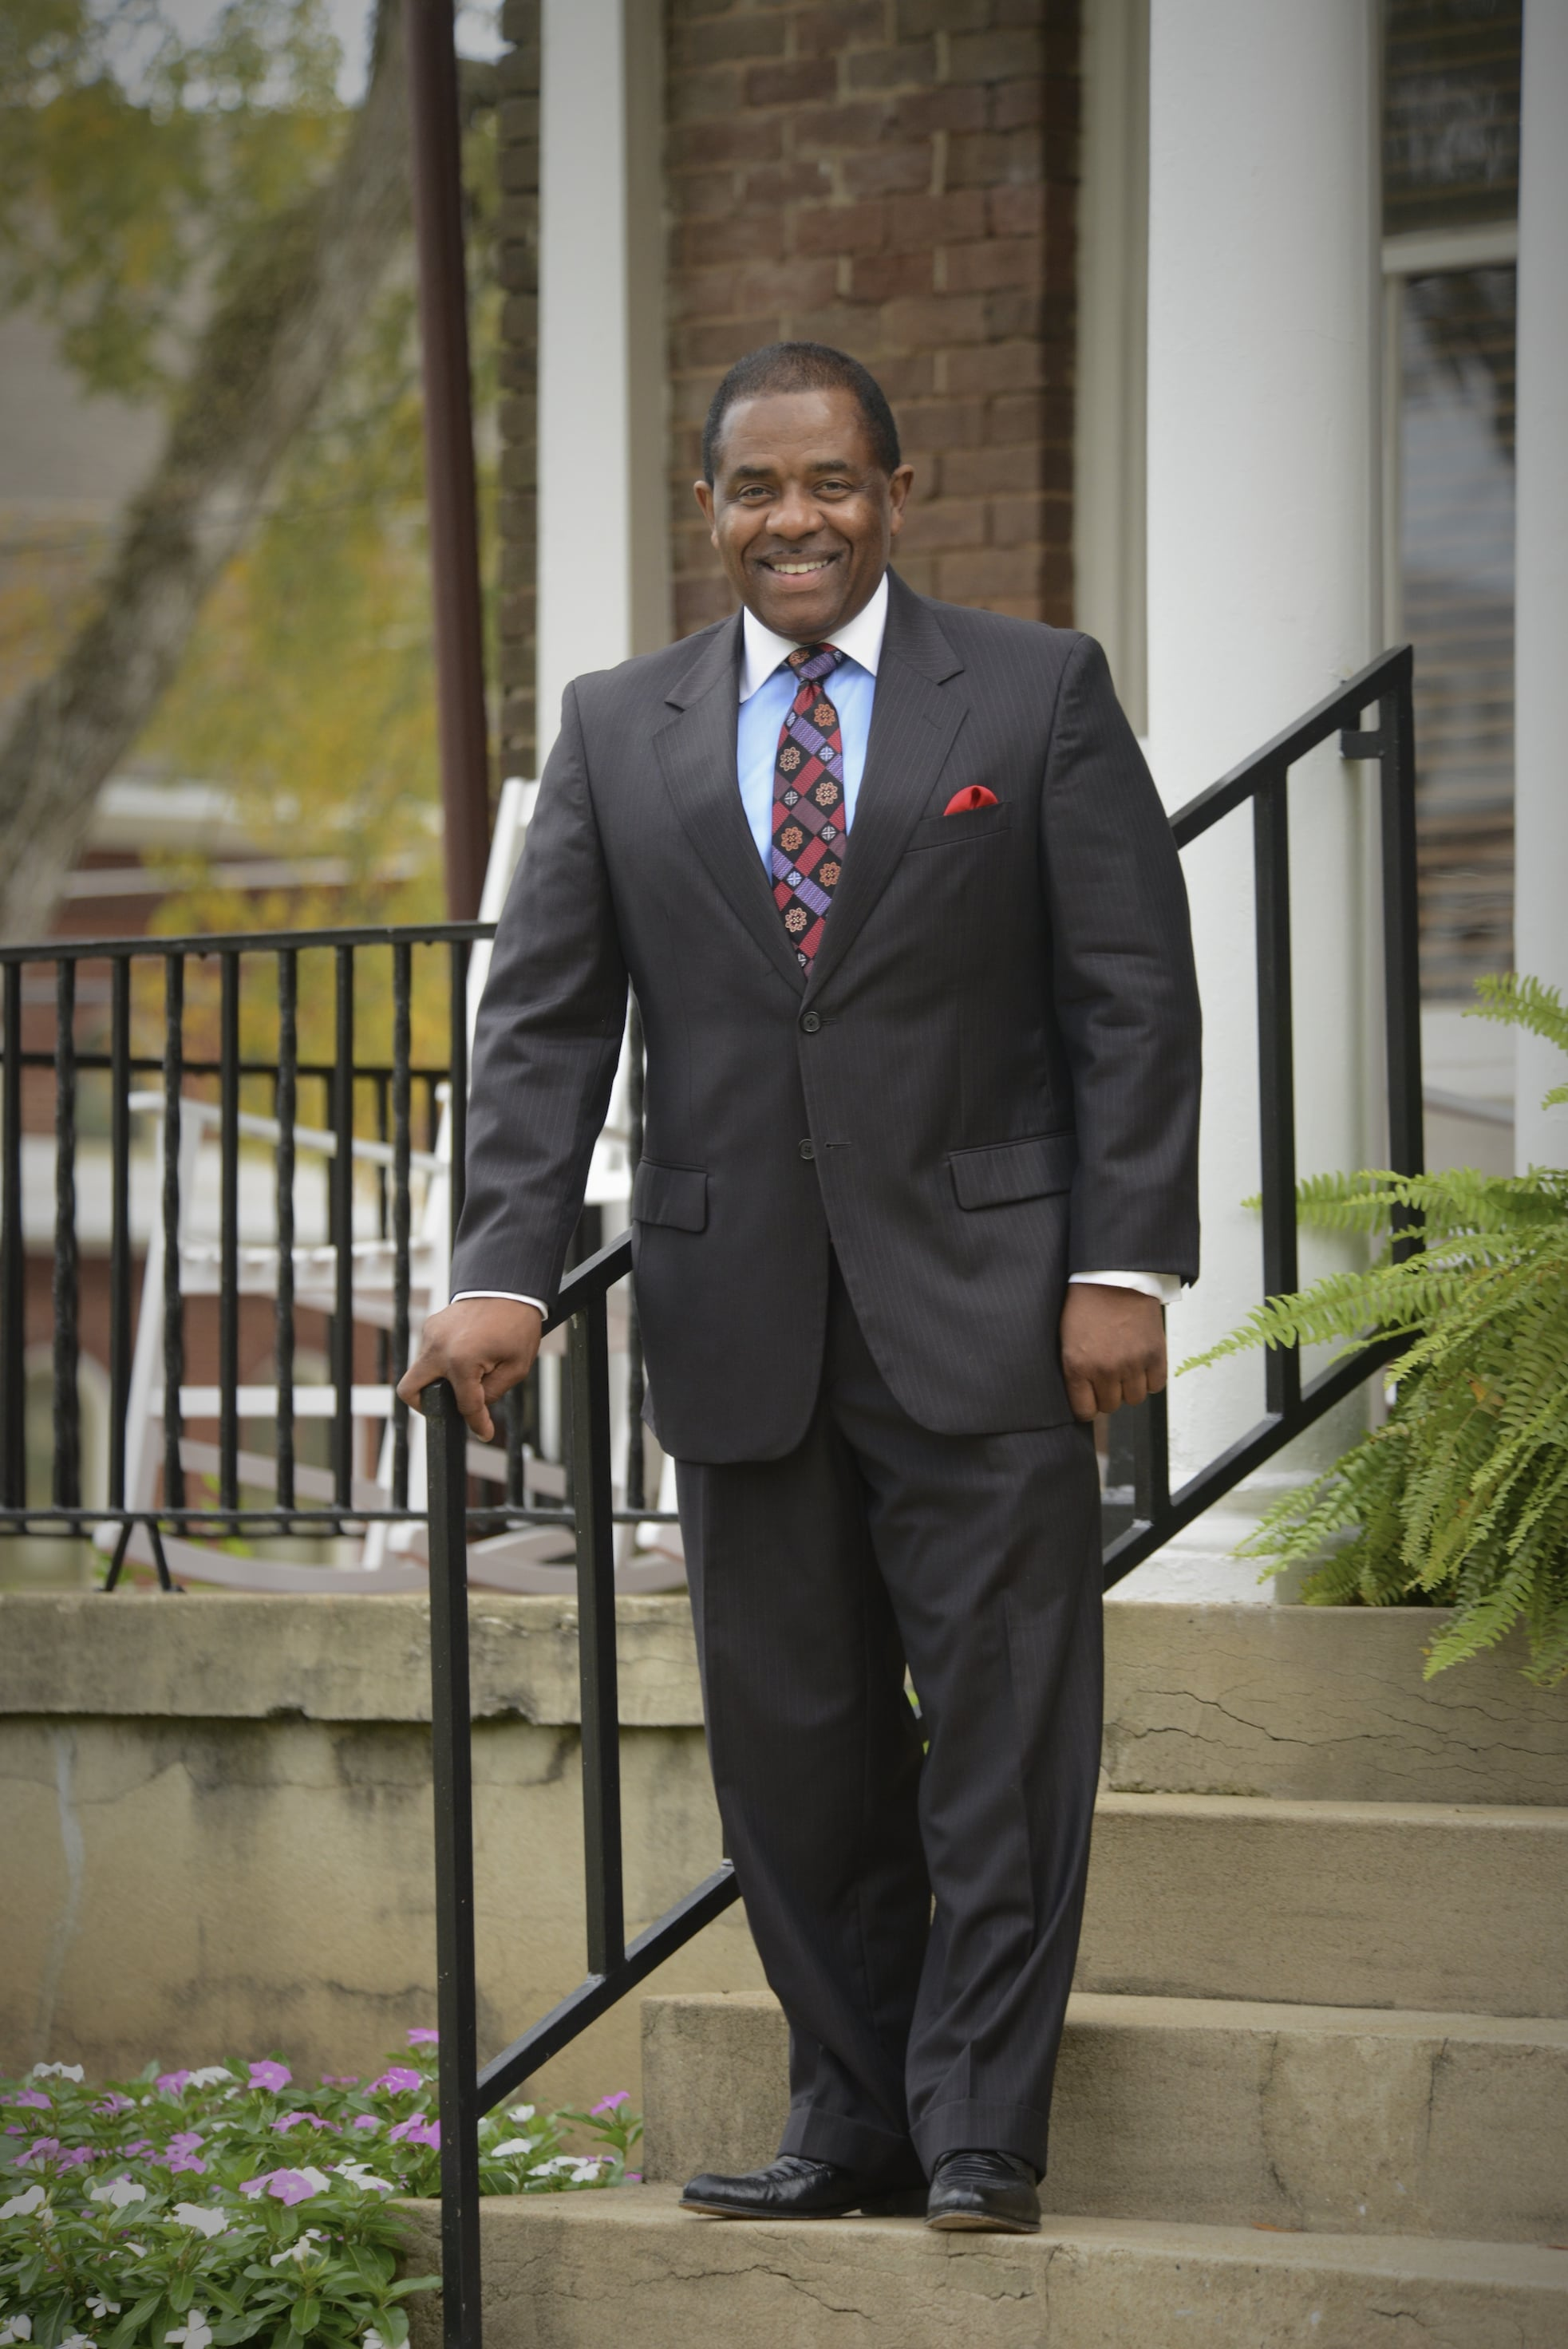 Billy Hawkins, president of Talladega College